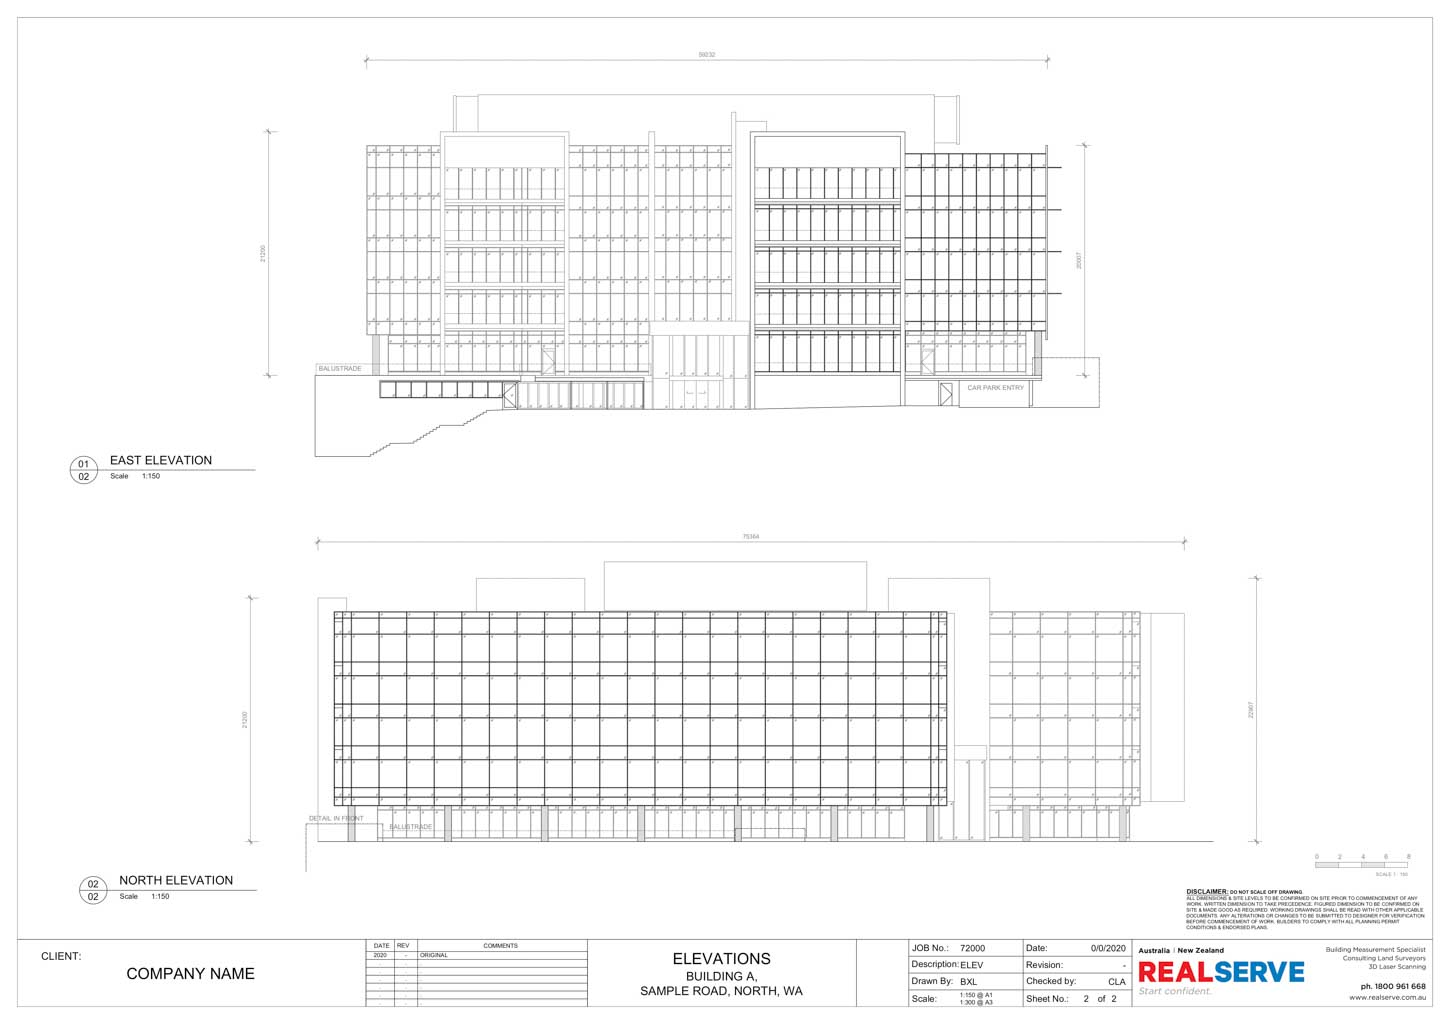 A SAMPLE OF A FACADE ELEVATIONS PLAN BY REALSERVE OF A PROPERTY